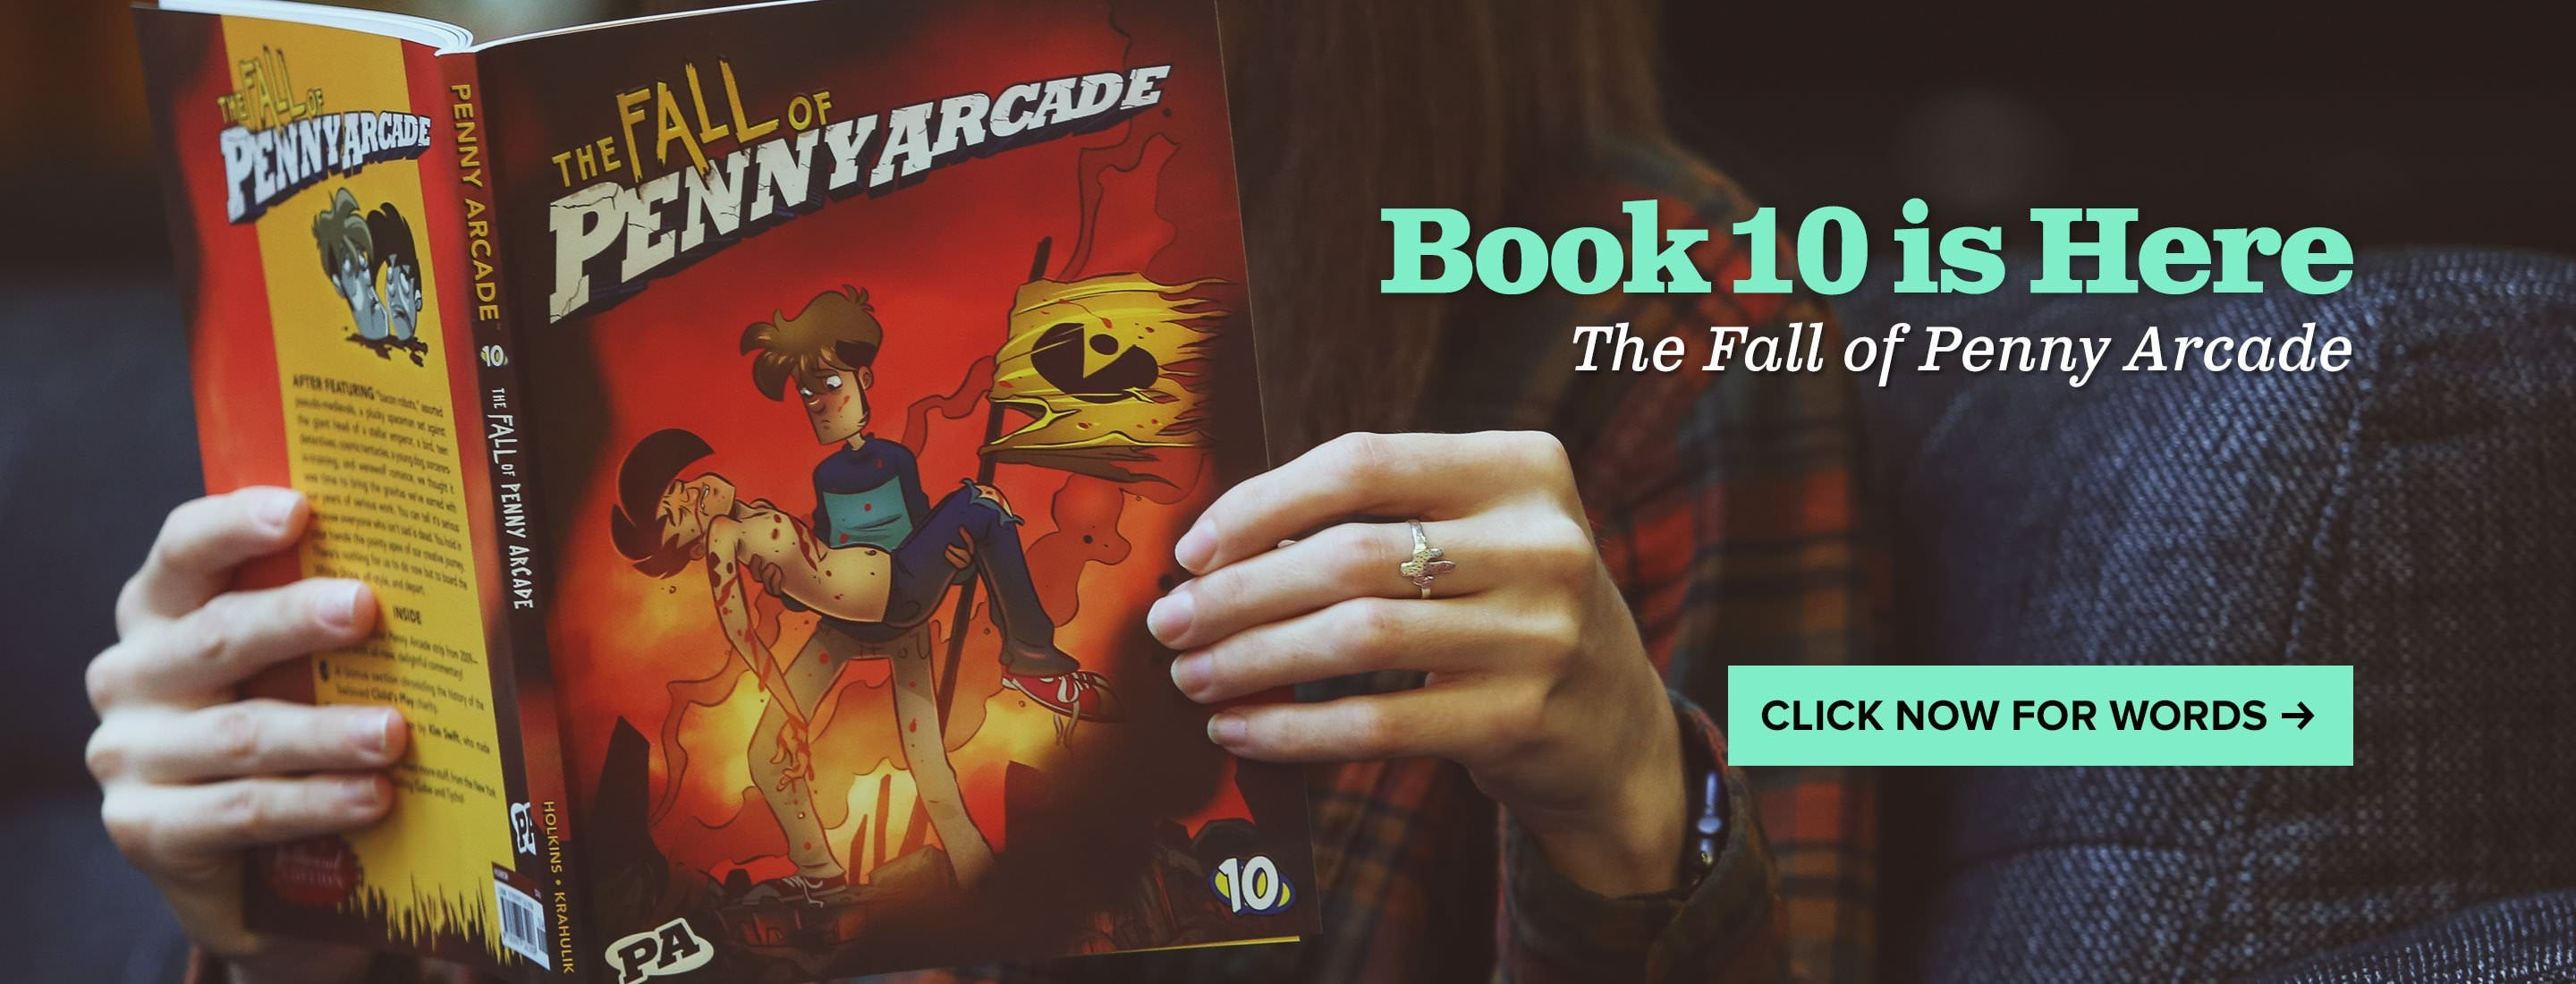 Book 10 is Here. The Fall of Penny Arcade. Click here for words.